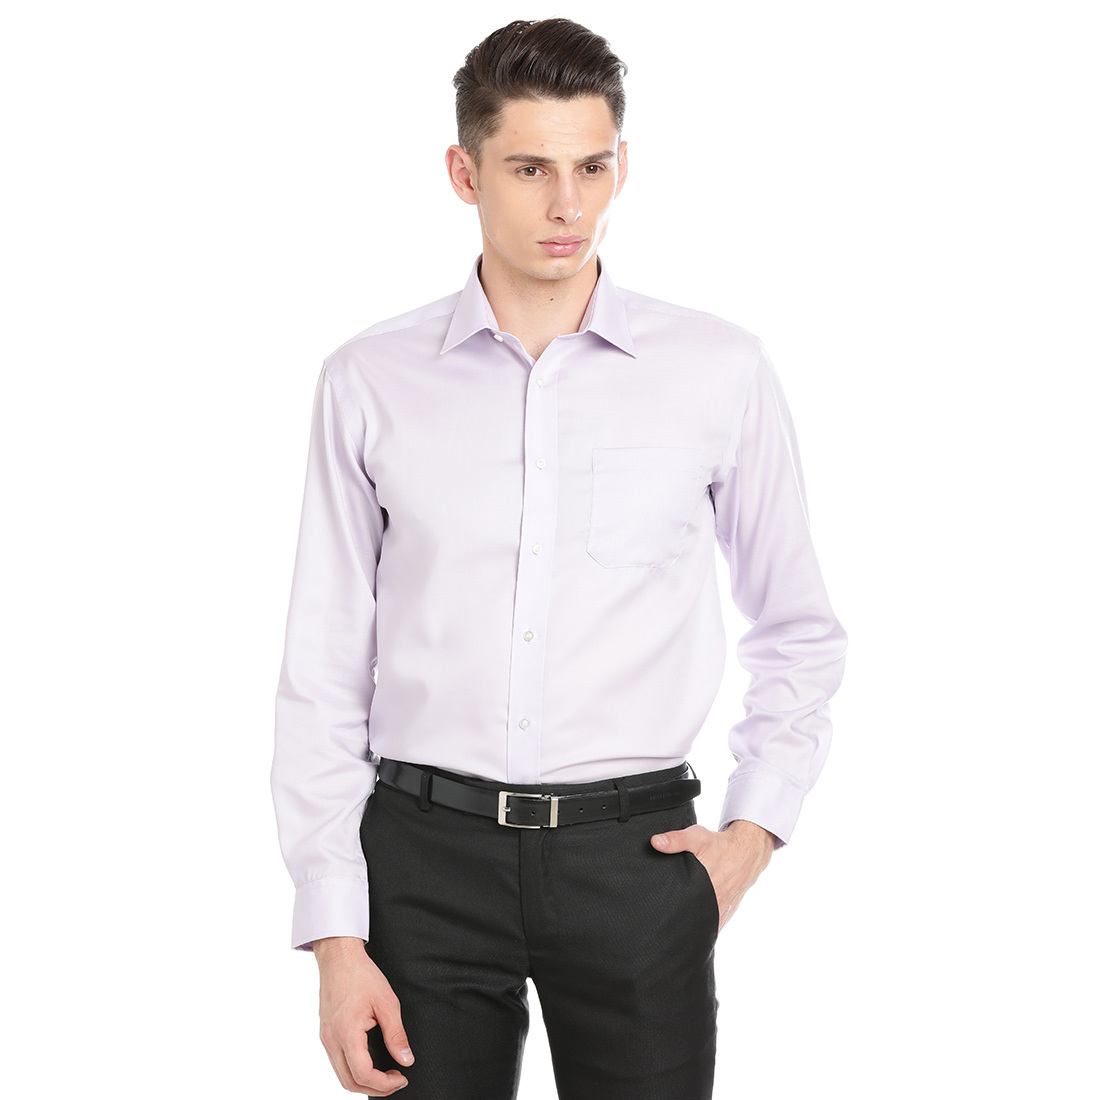 Paradigm Light Purple Color Formal Pure Cotton Non-Iron Shirt